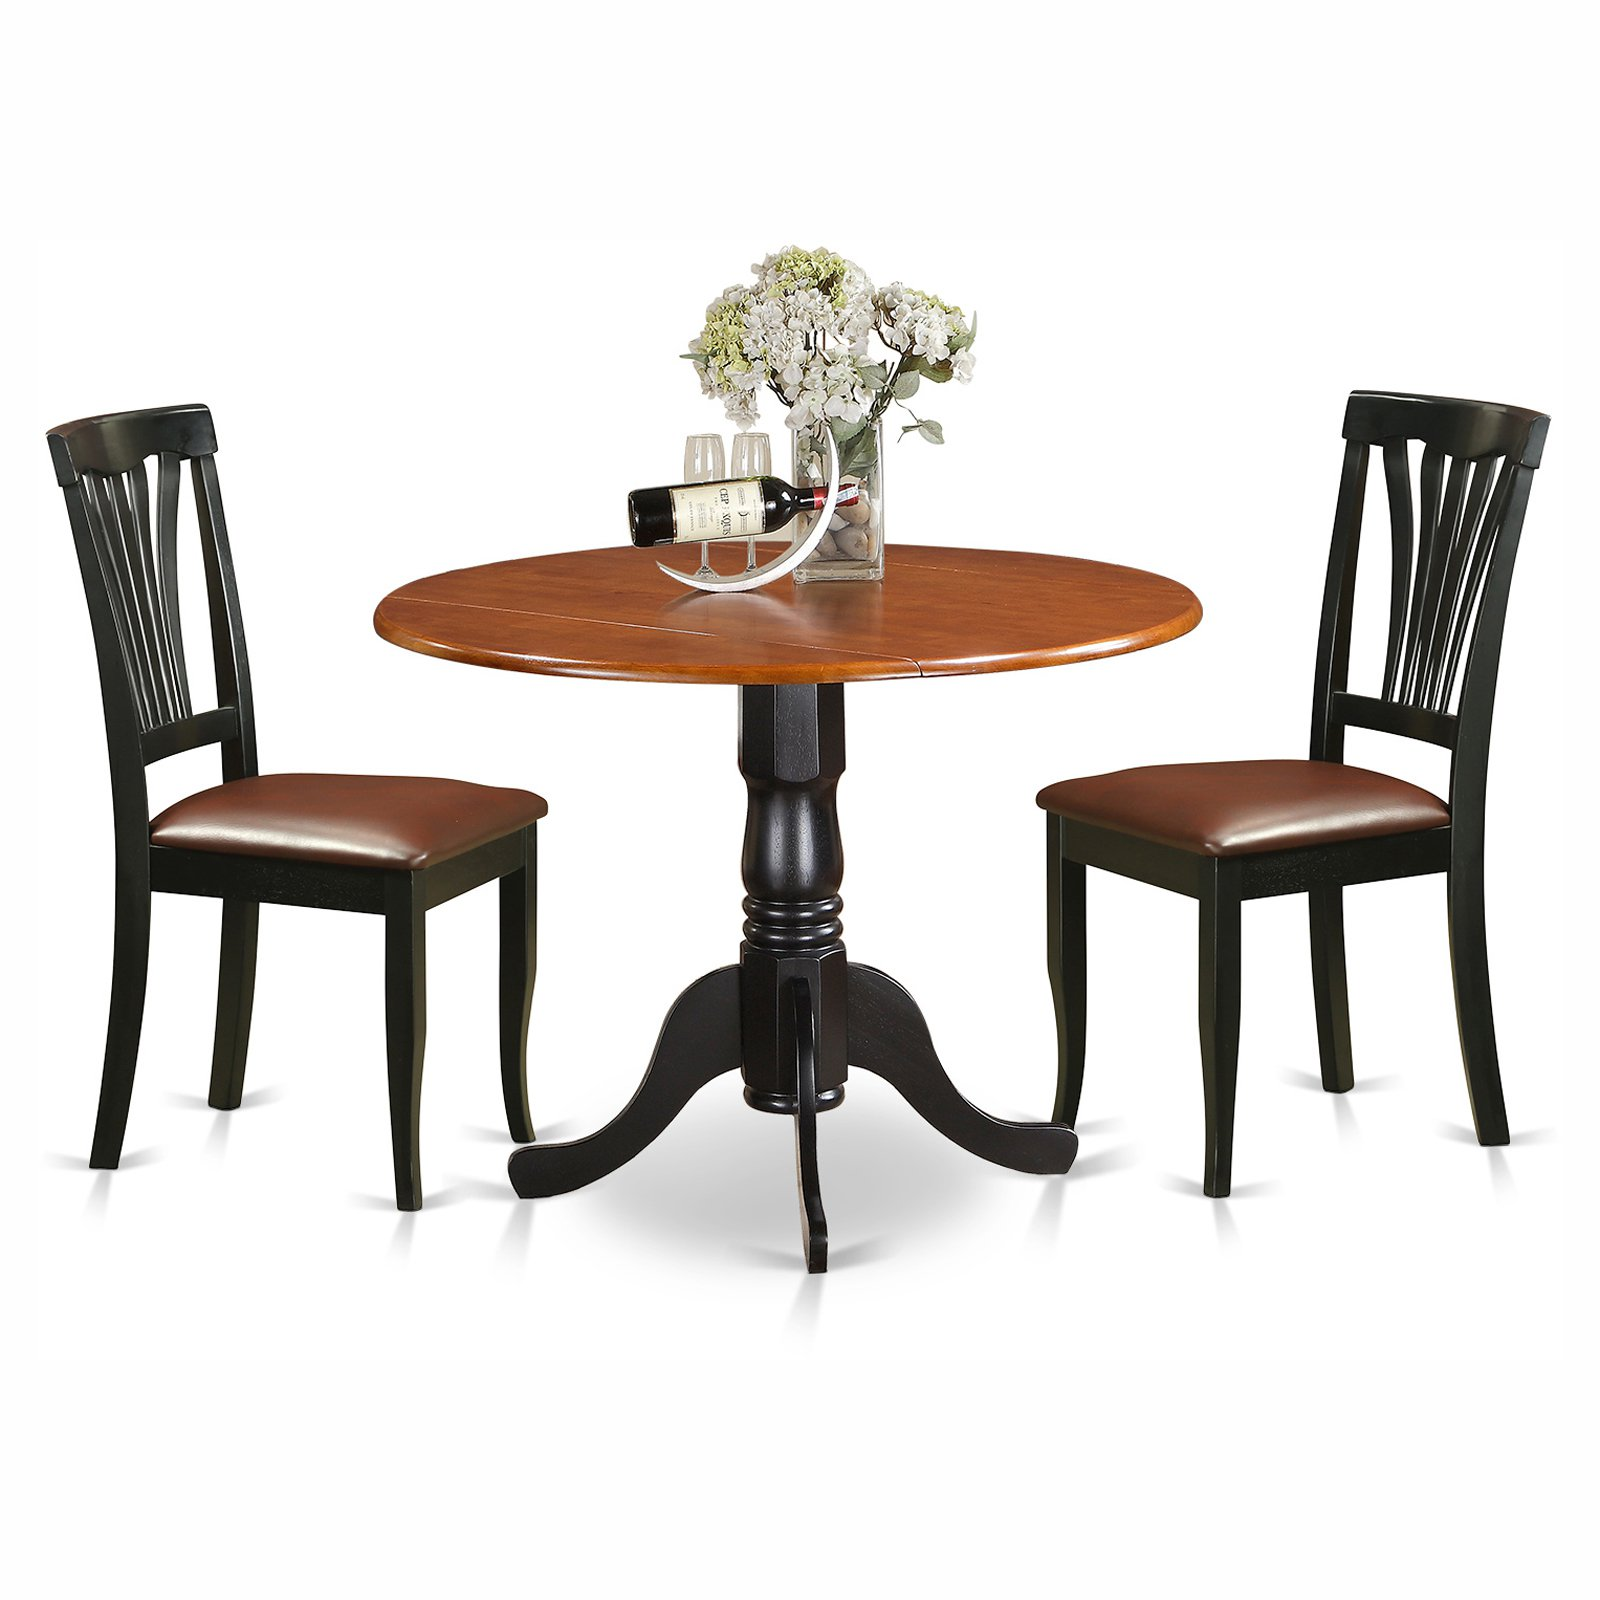 East West Furniture Dublin 3 Piece Round Dining Table Set with Faux Leather Avon Chairs